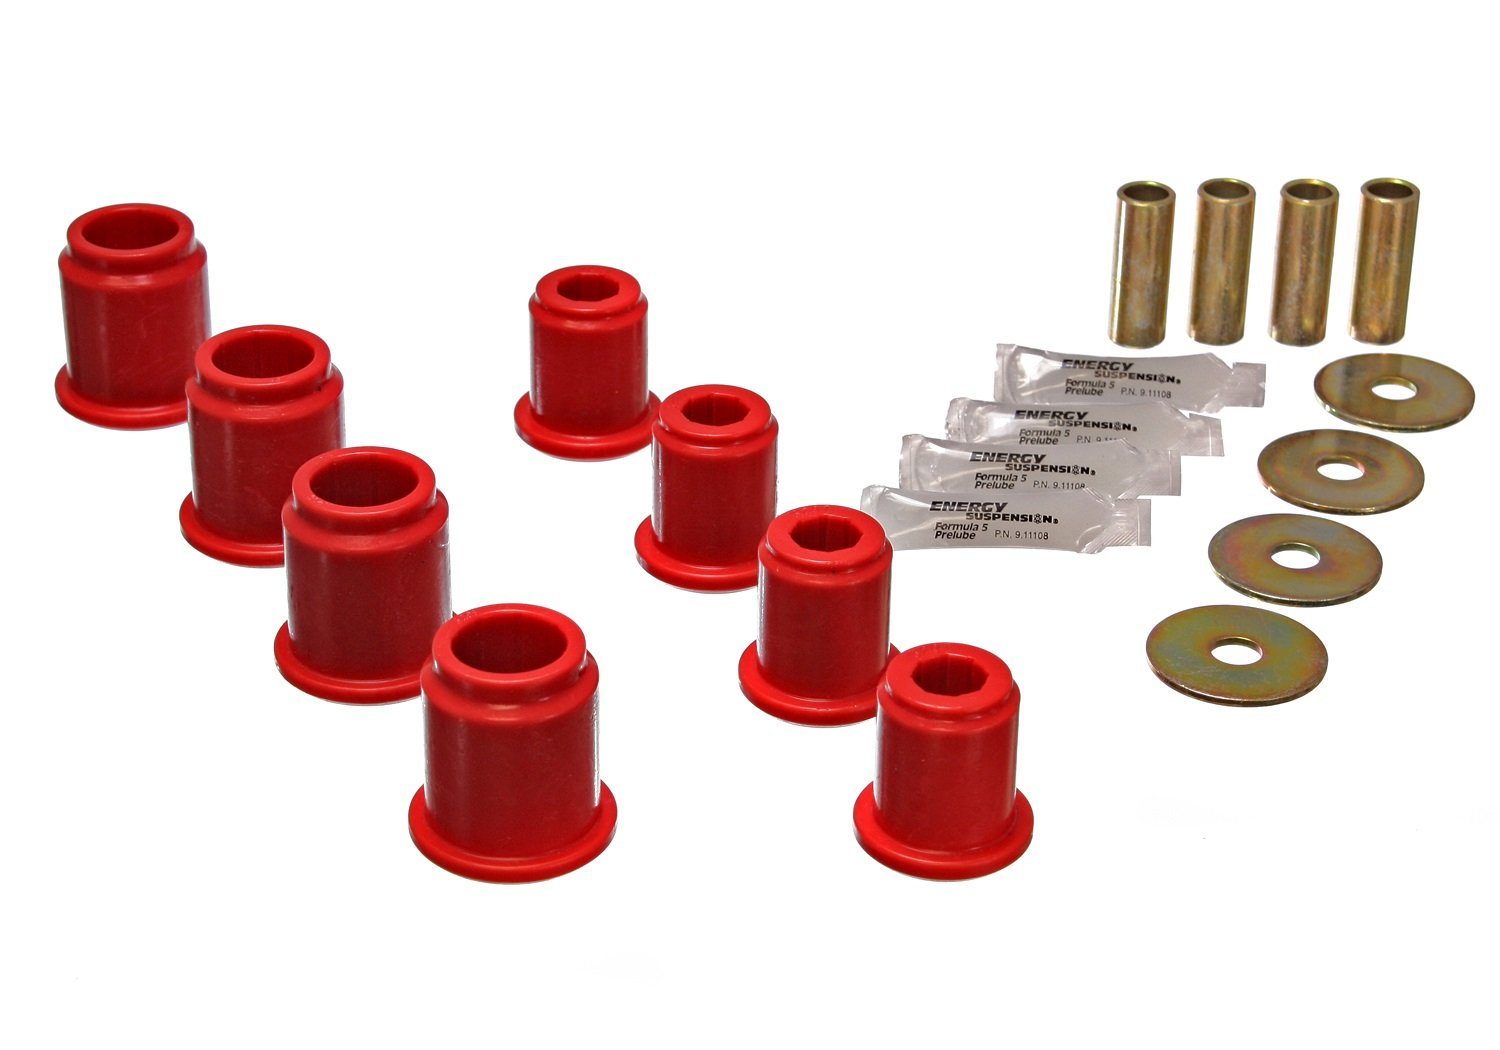 Energy Suspension ENE-8.3115R Lenkerkabelbuchsen-Set, rot von Energy Suspension